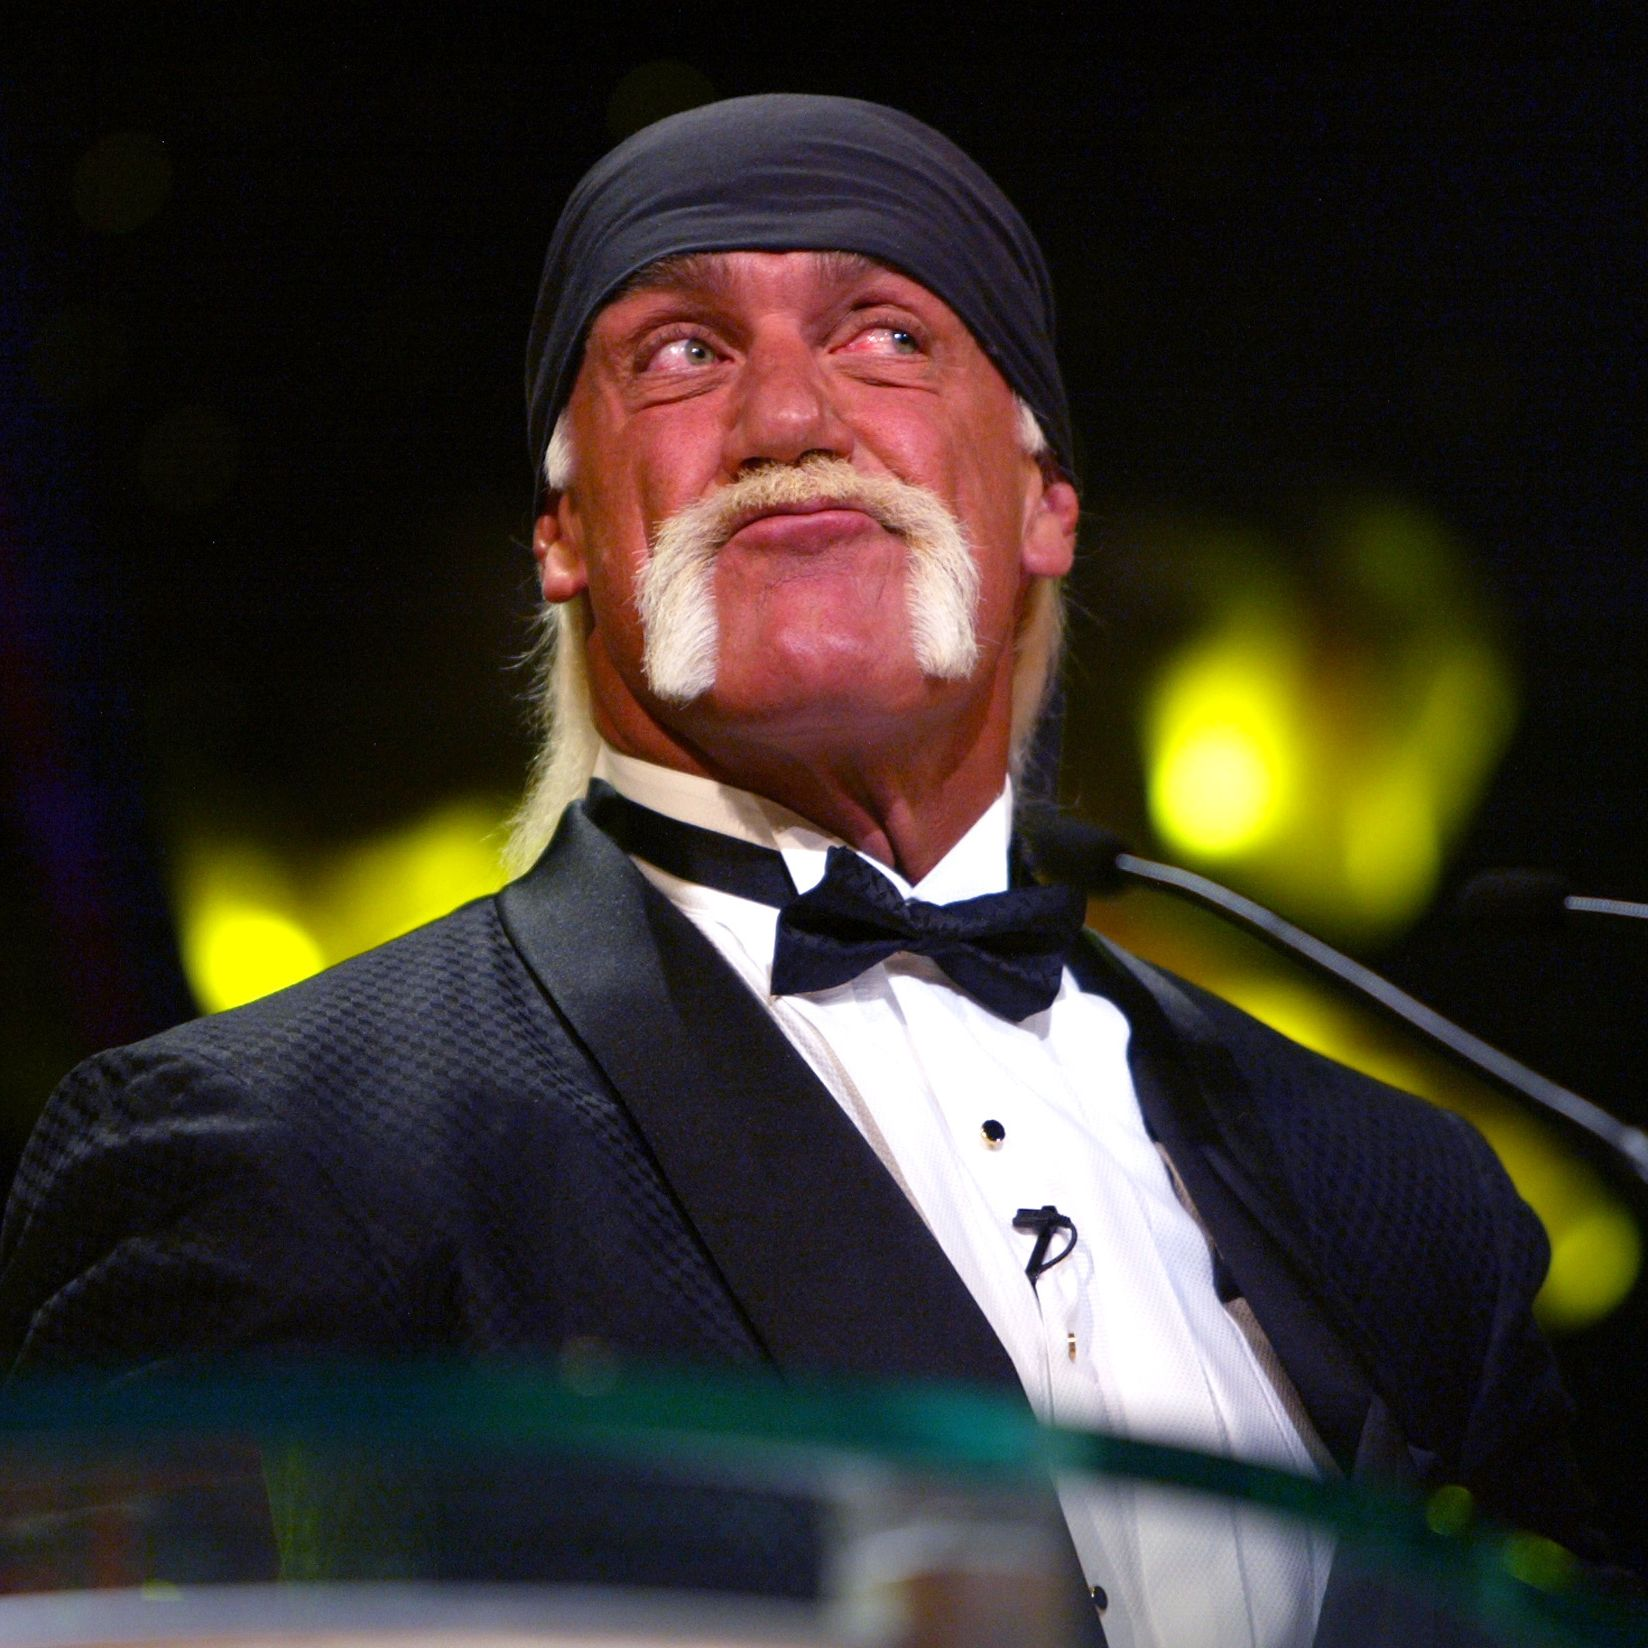 2003: Hulk Hugan The most famous WWE wrestler of all time just happens to have the most instantly recognizable mustache of his generation thanks to the bleach blonde color and dramatic horseshoe shape.